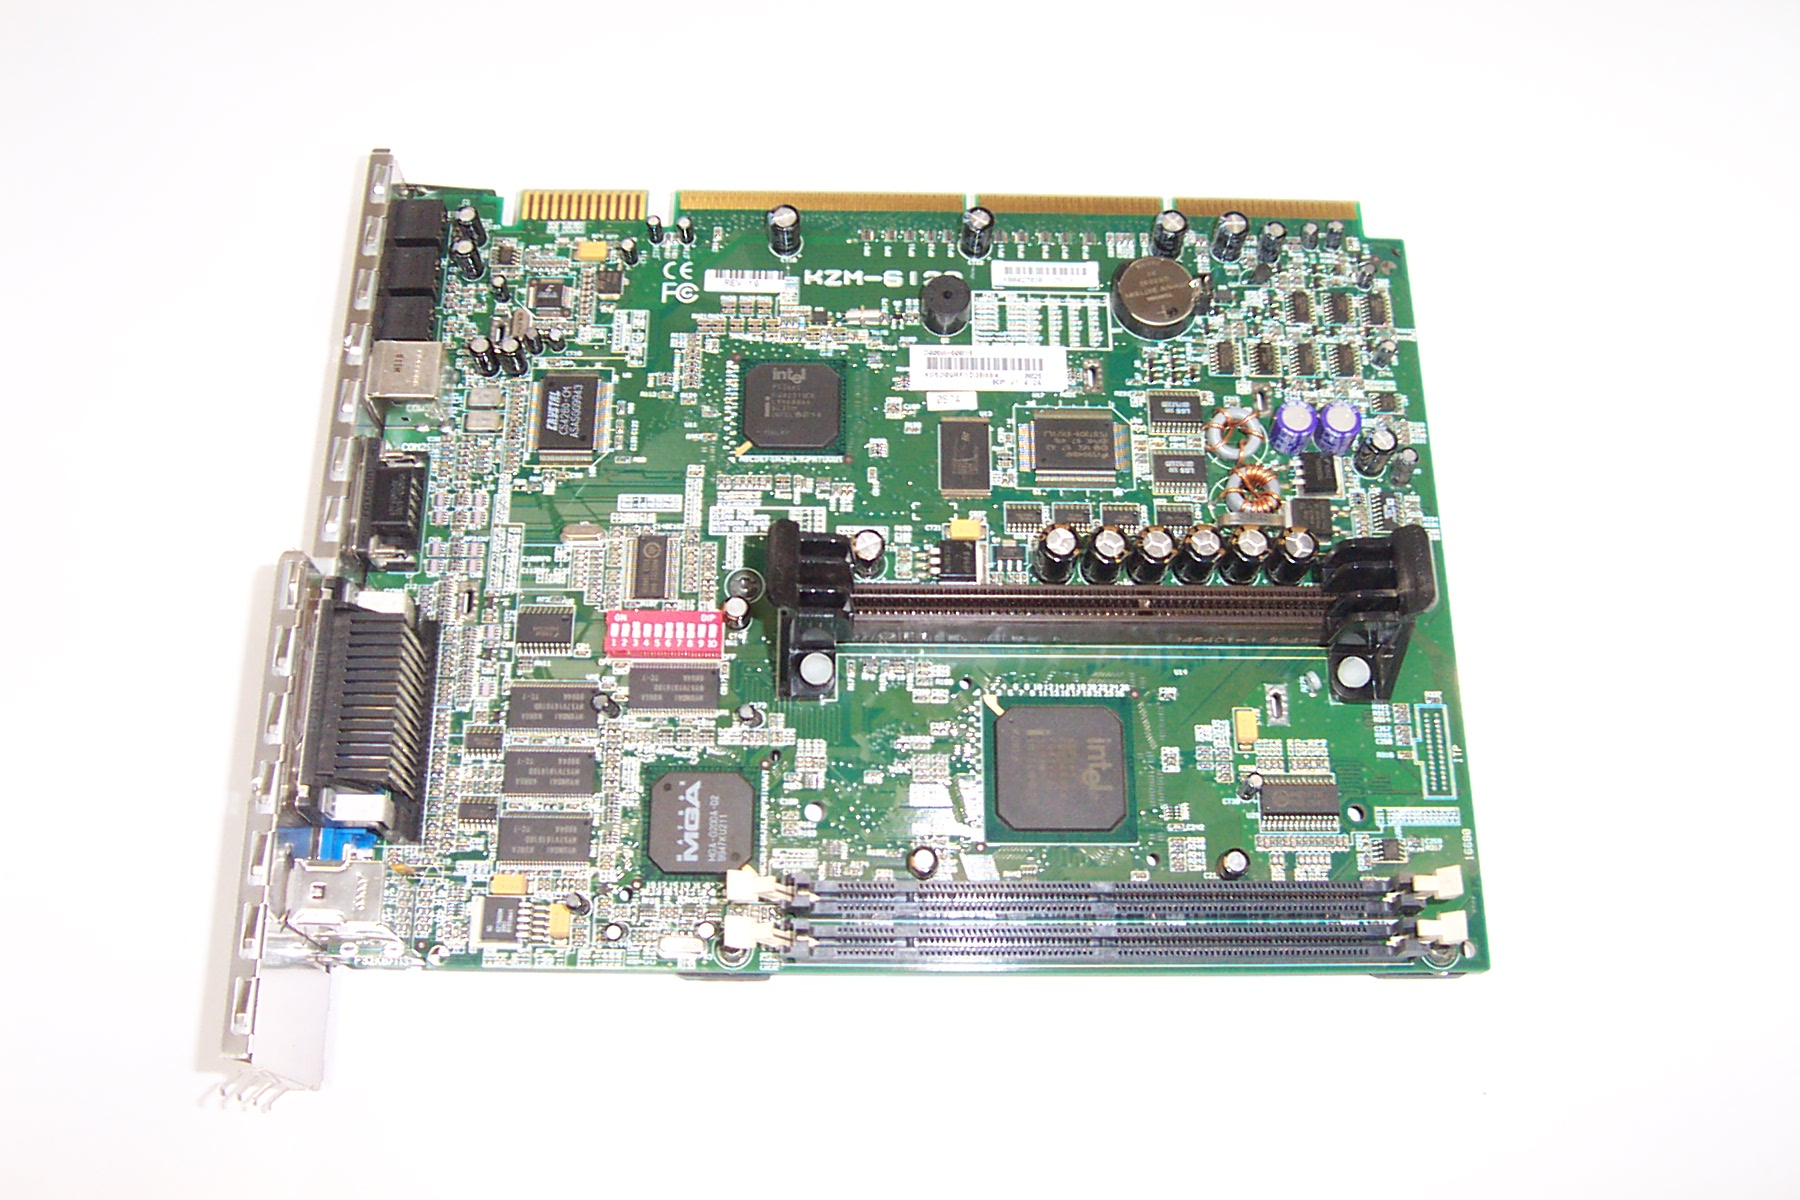 Kzm 6120 motherboard